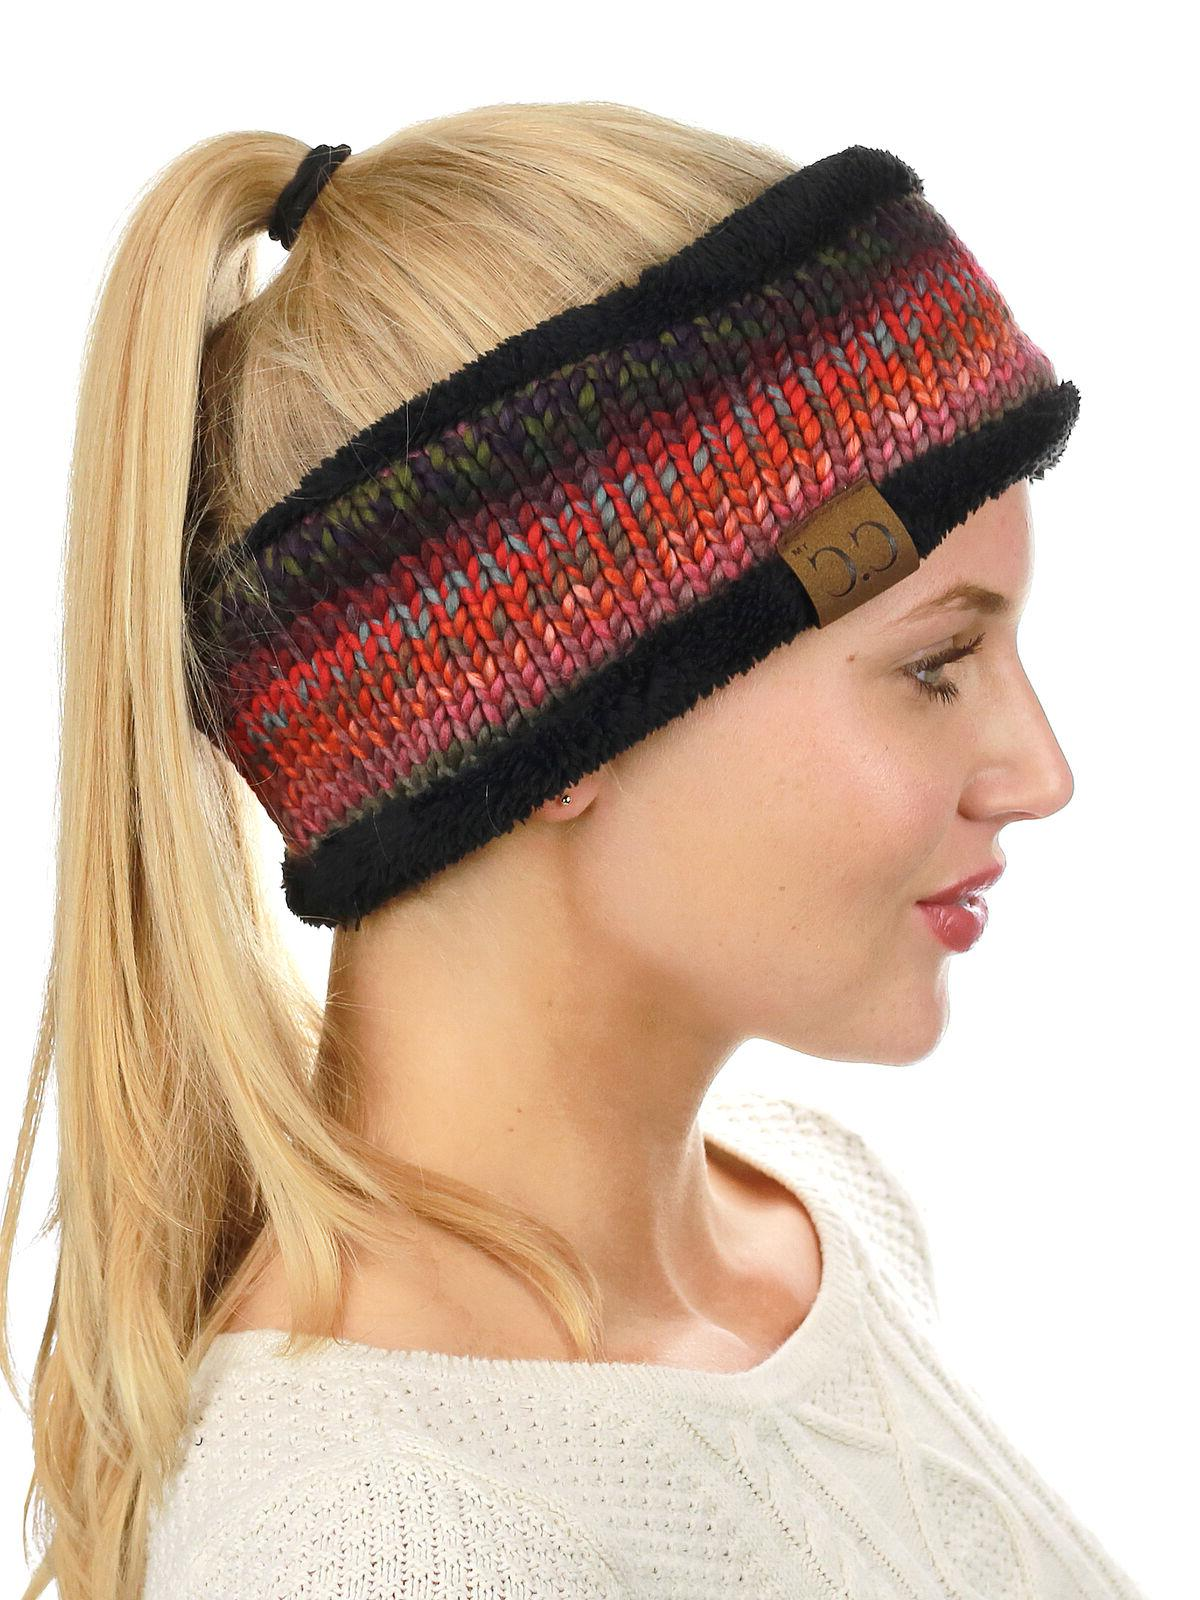 NEW! Colorful Cable Knit FUZZY Warmer Head